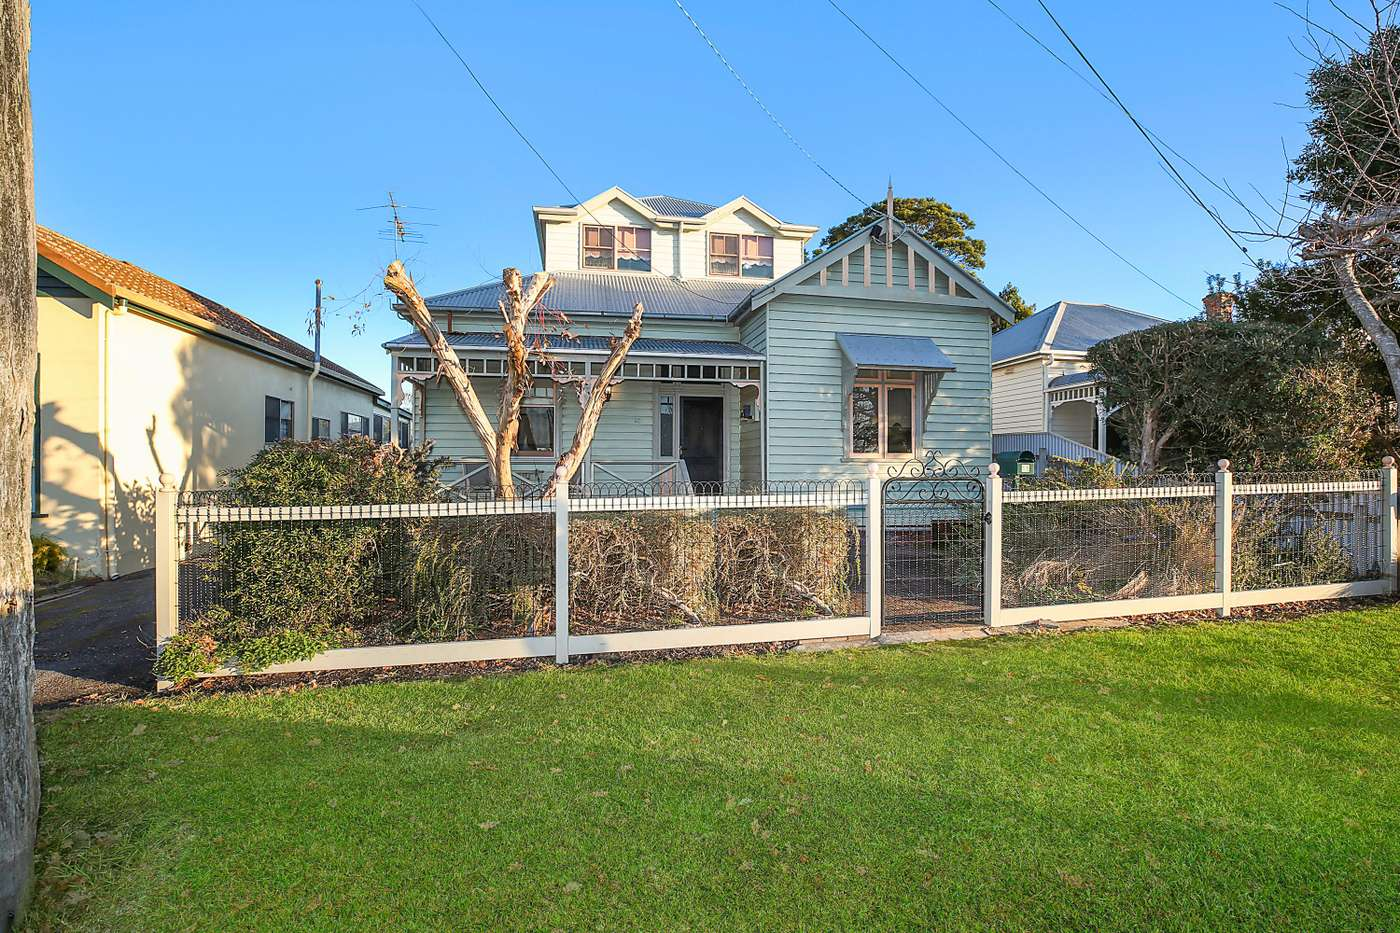 Main view of Homely house listing, 15 Mckinnon Street, Camperdown, VIC 3260